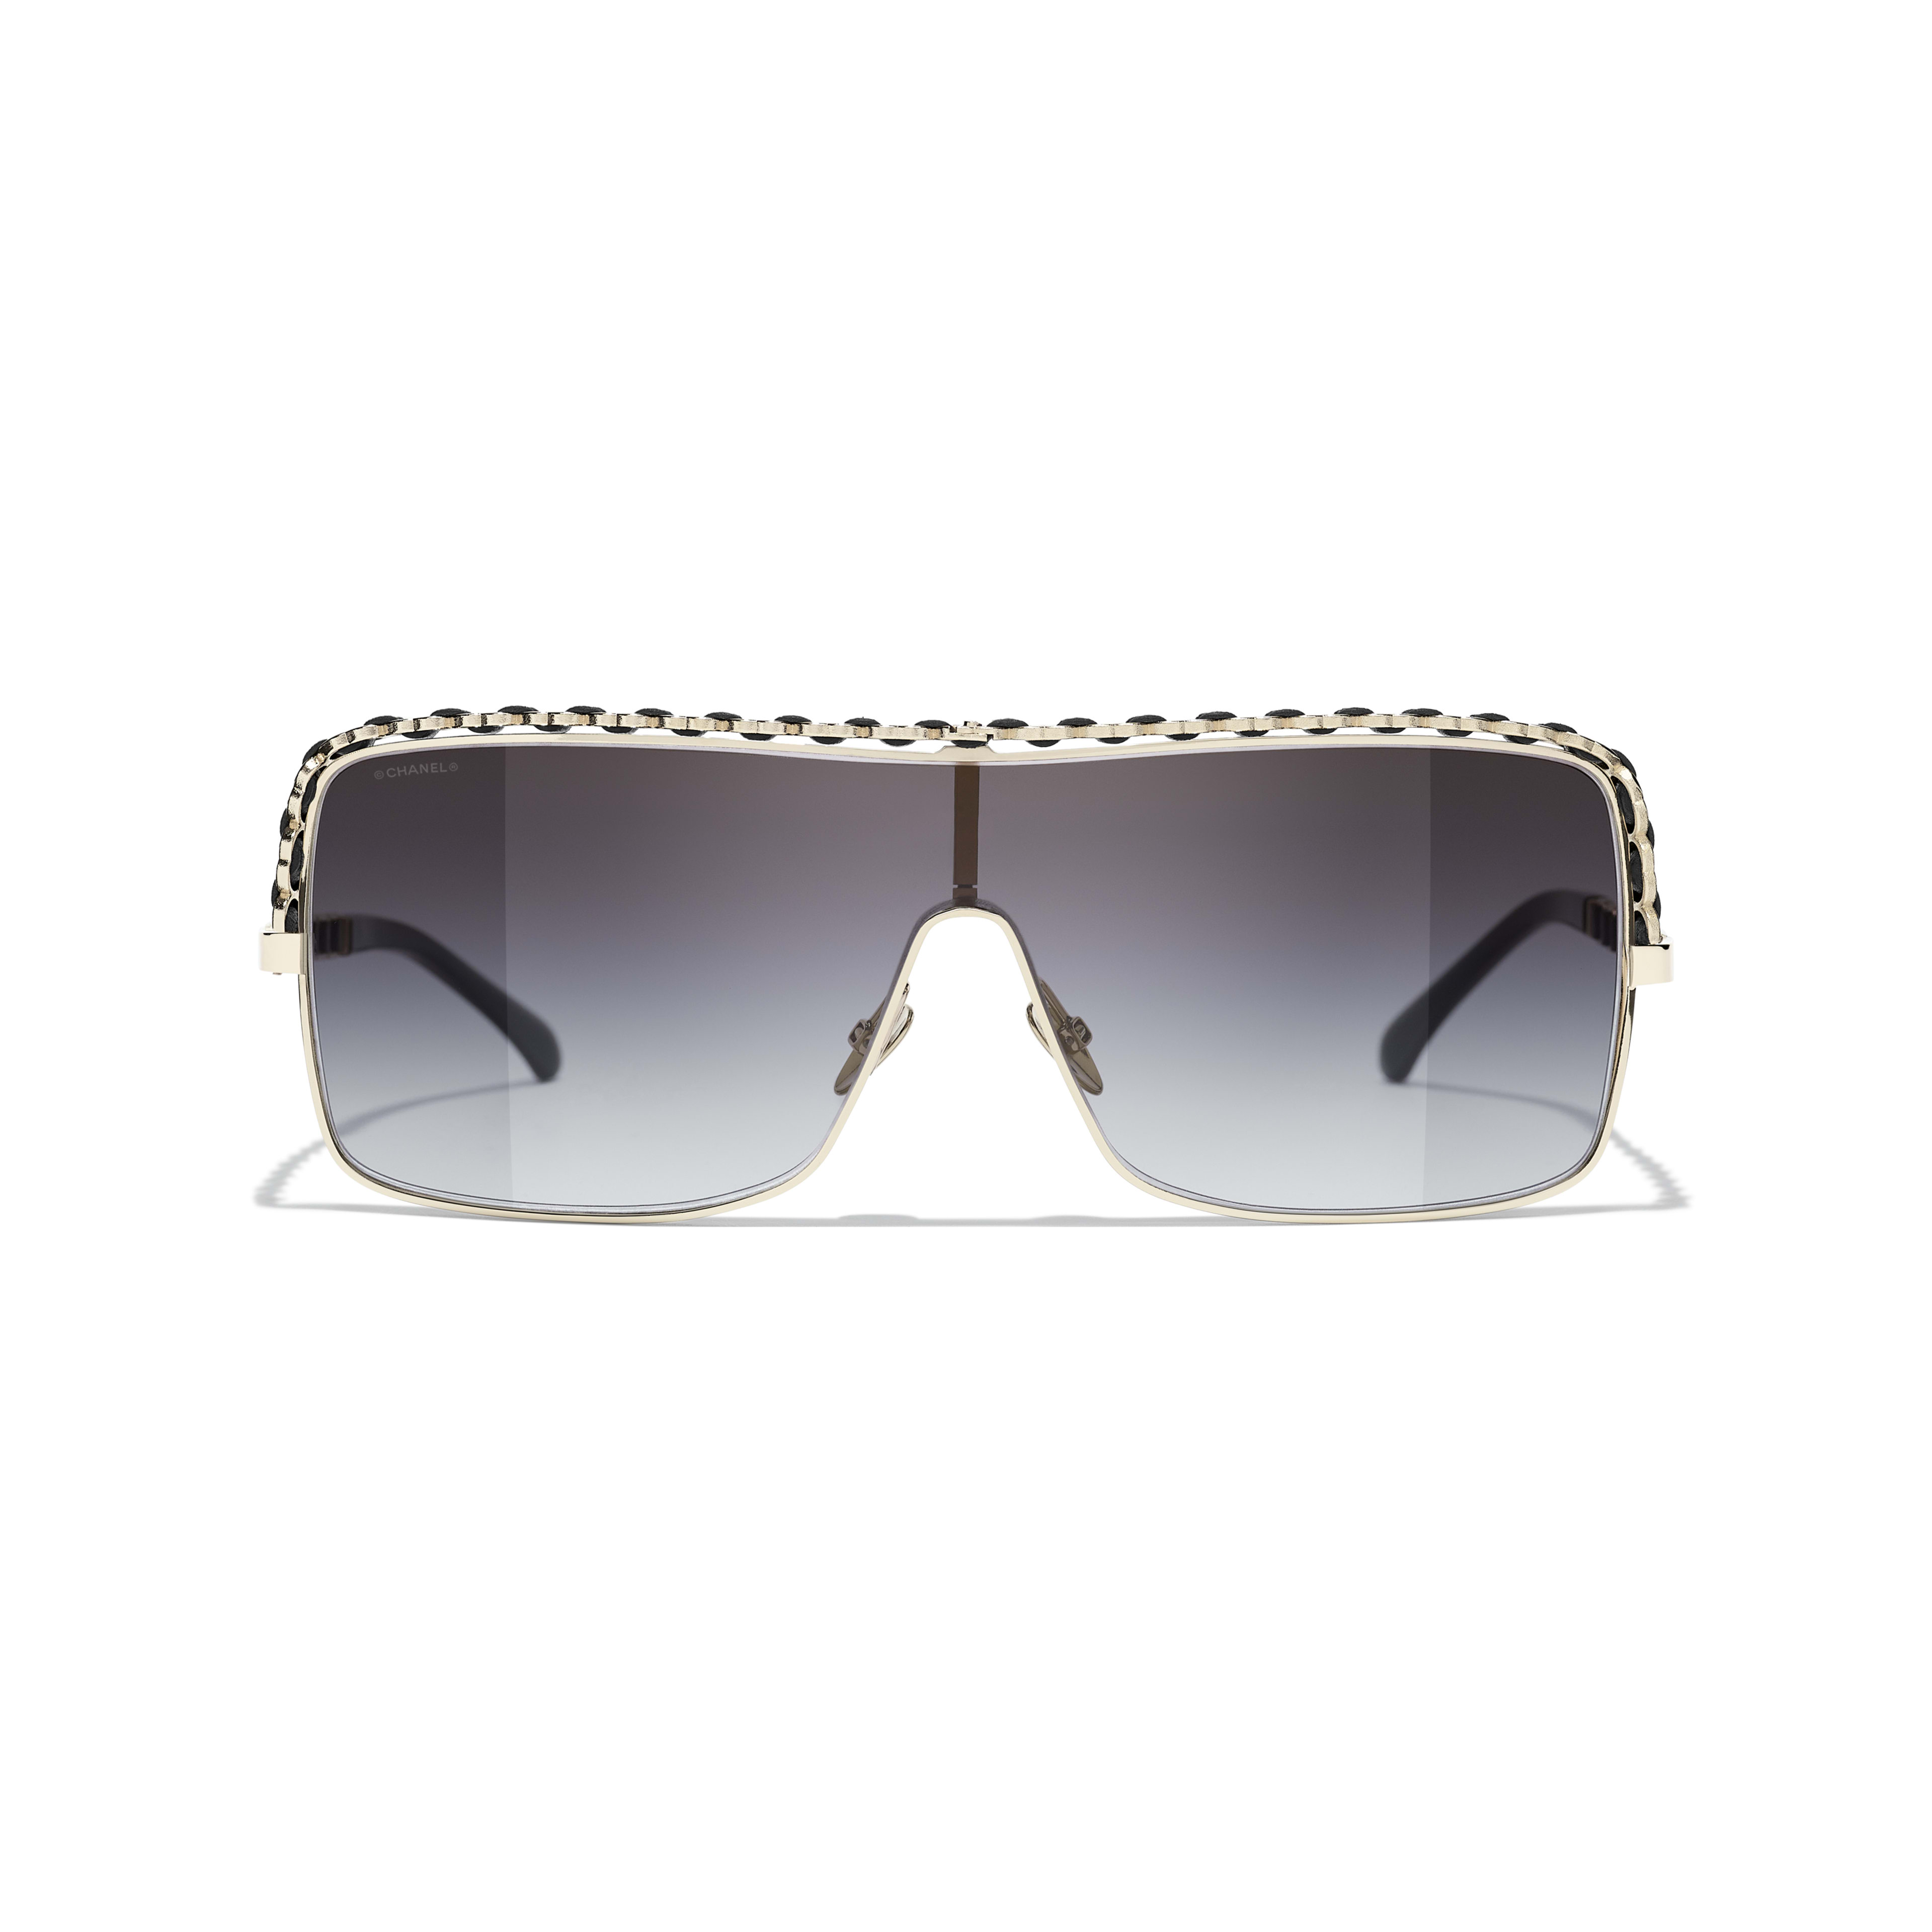 Shield Sunglasses - Gold - Metal & Calfskin - CHANEL - Alternative view - see standard sized version